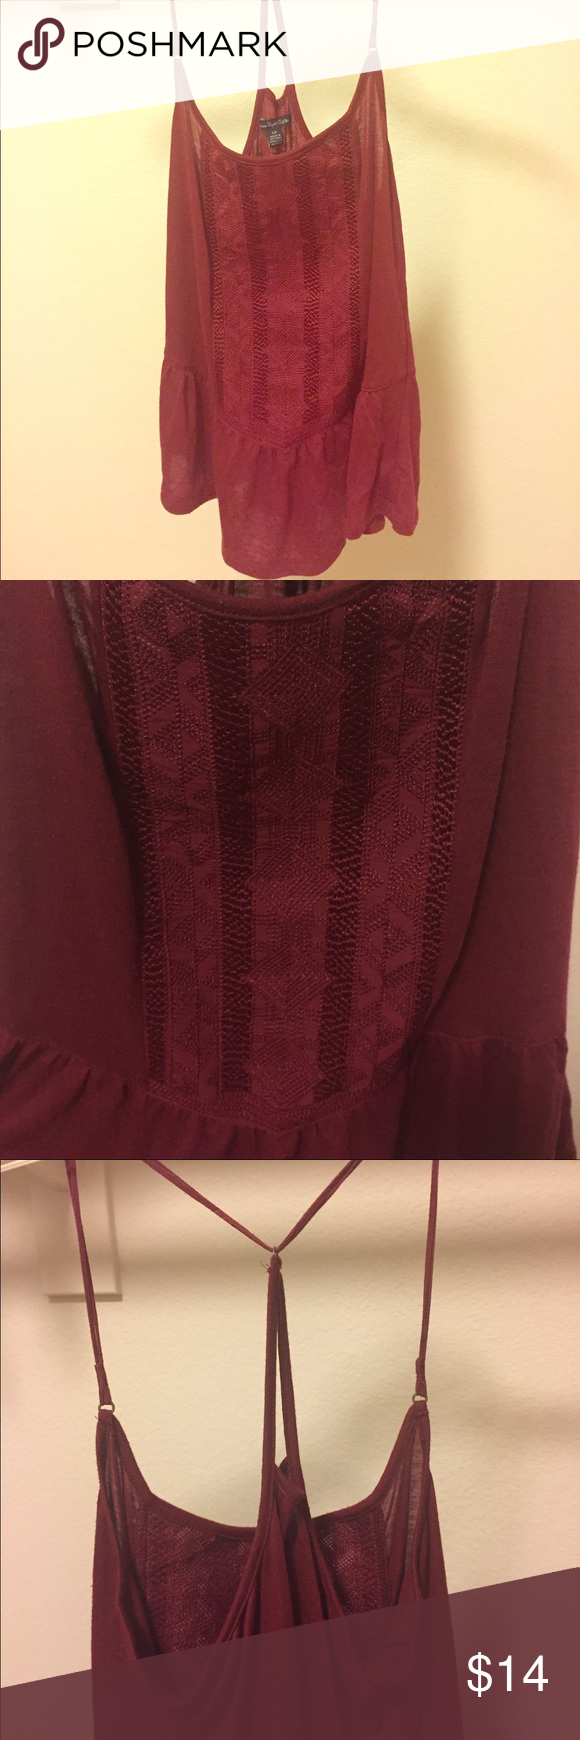 ✨Christmas Sale✨Red American Eagle Tank Top Red American Eagle tank top. Worn less than a handful of times. 65% Polyester. 35% Rayon. American Eagle Outfitters Tops Tank Tops